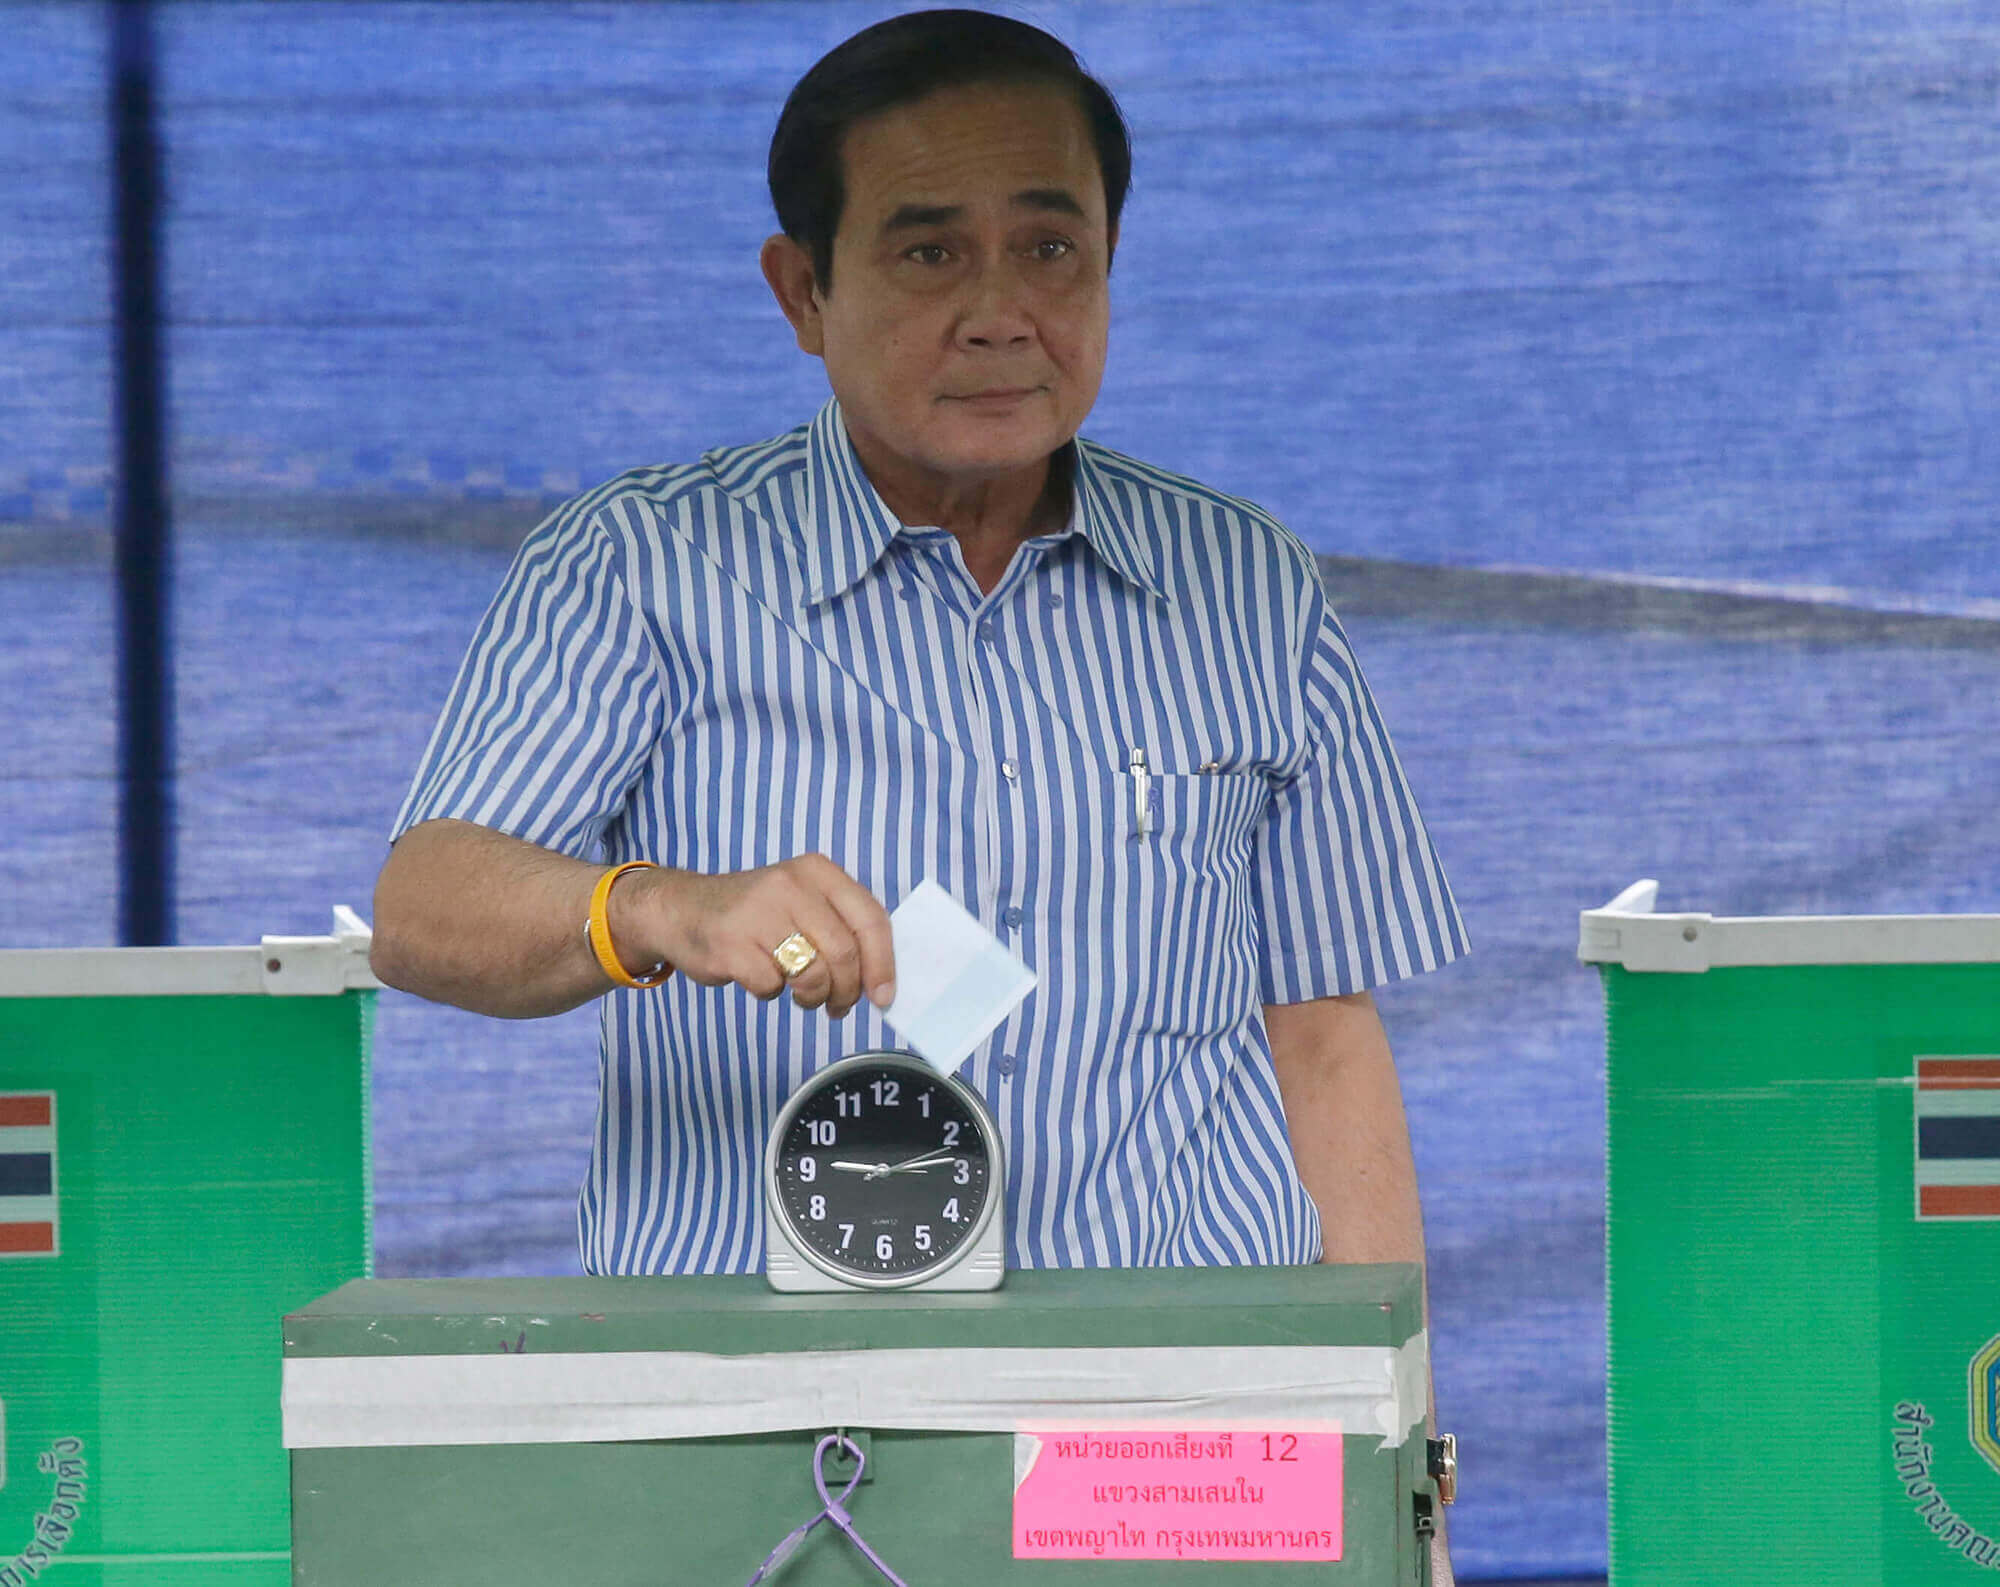 Image of Thailand's Prime Minister Prayuth Chan-ocha casting his vote